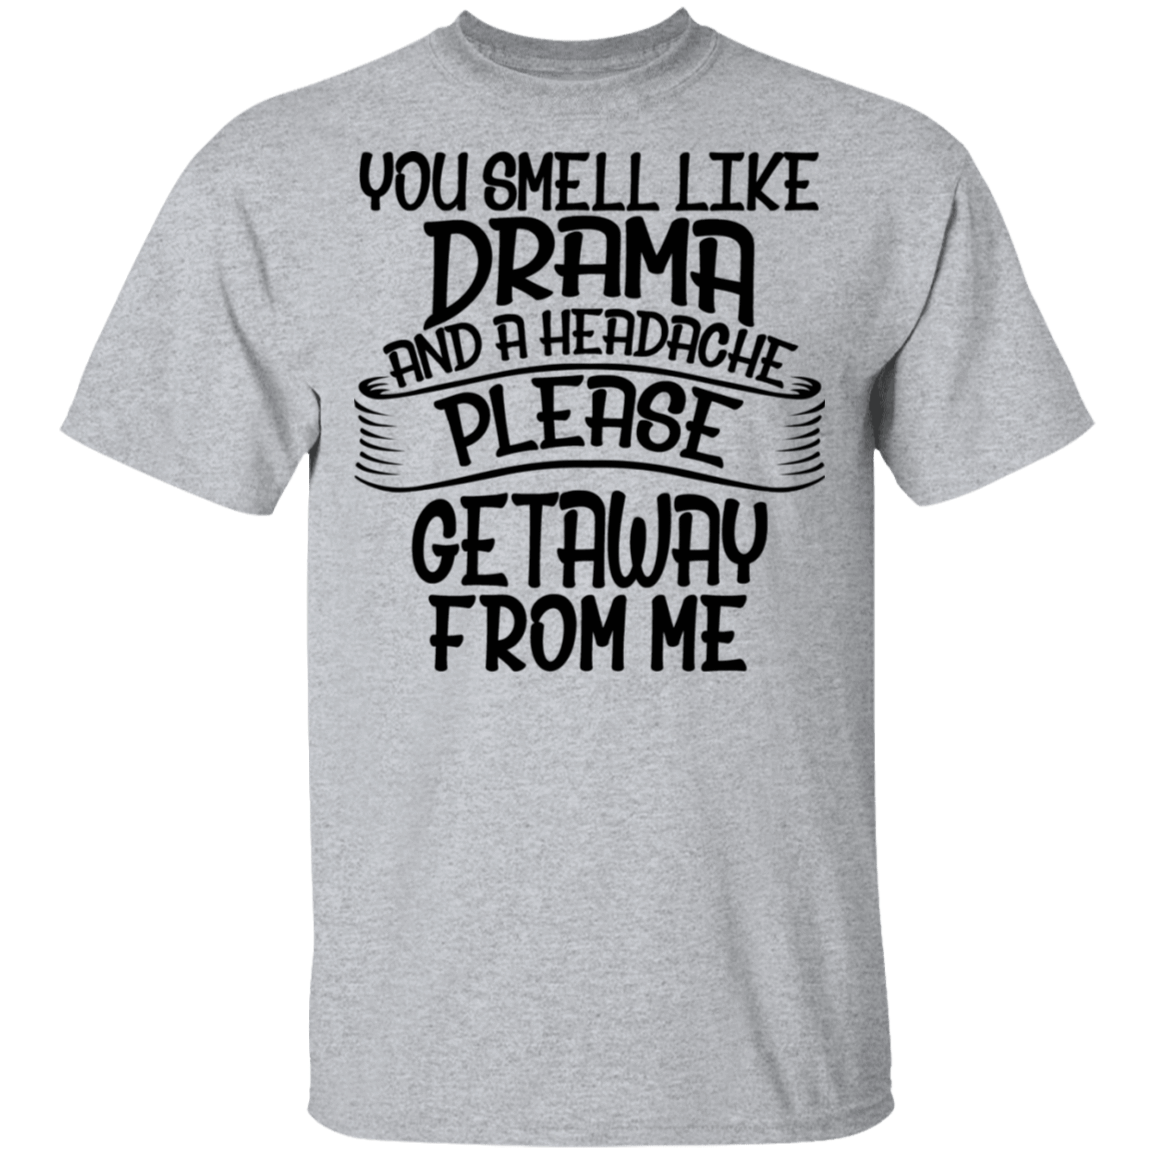 You Smell Like Drama and a Headache Please Get Away From Me T-Shirts, Hoodies, Tank 22-115-80184331-254 - Tee Ript